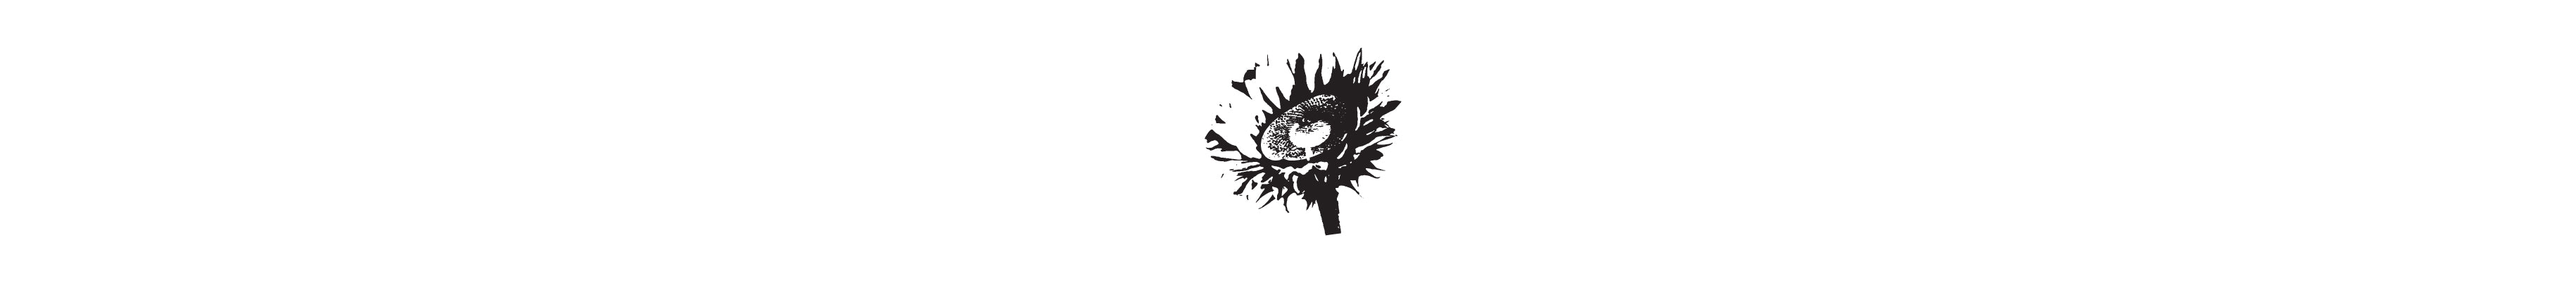 Illustrations for wildflowers